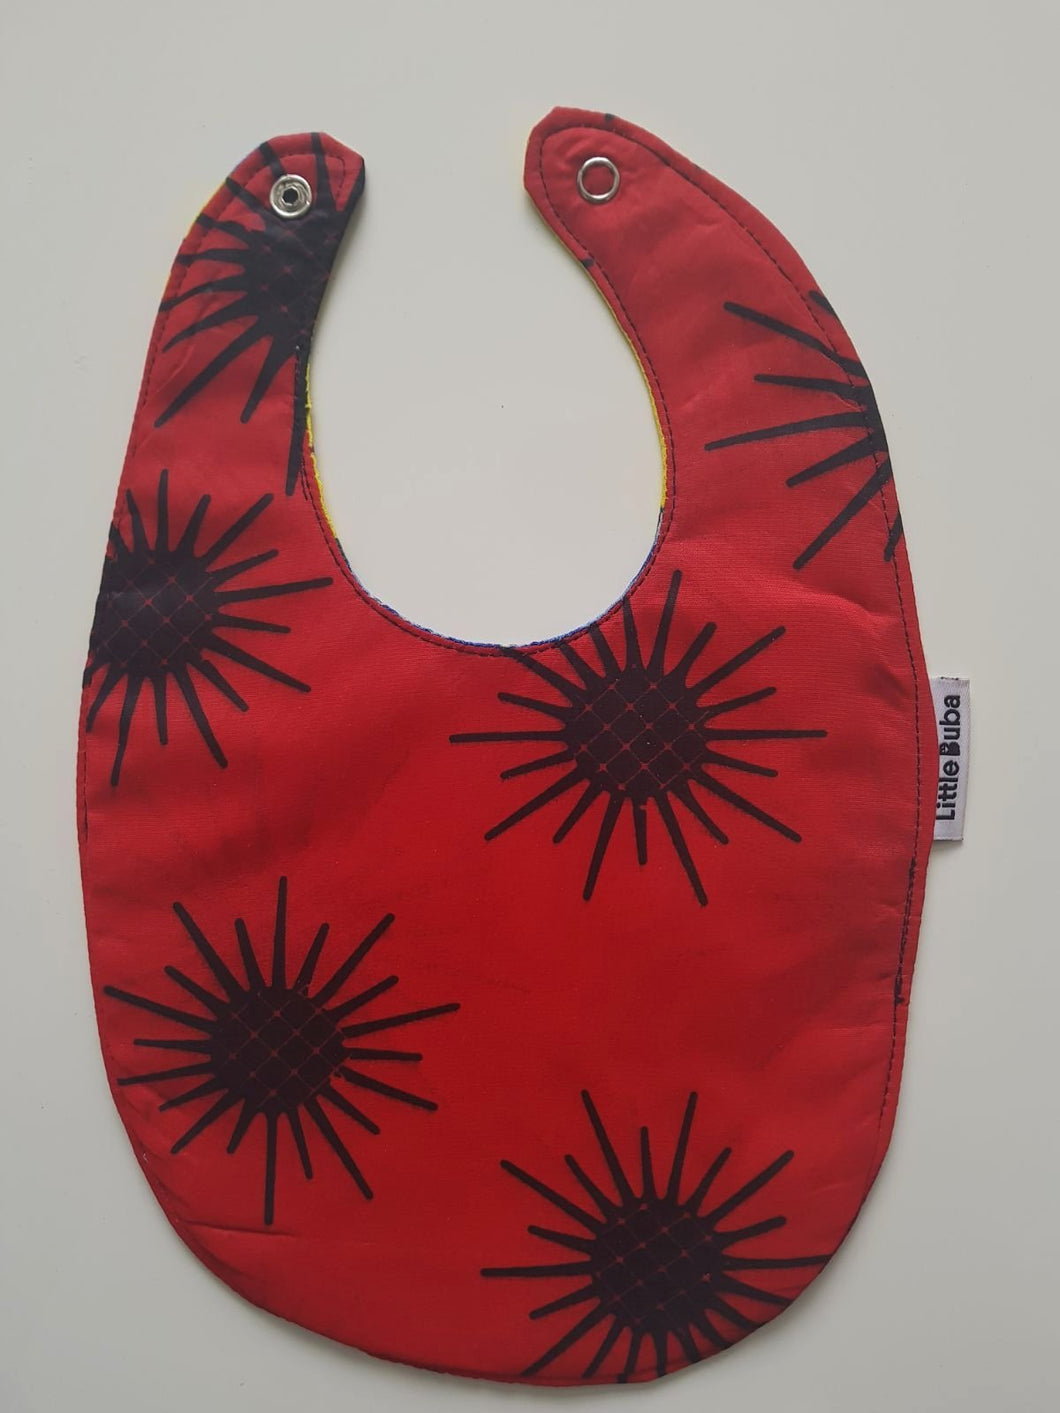 1 x Spider Print/Tattooed Reversible Buba Bib